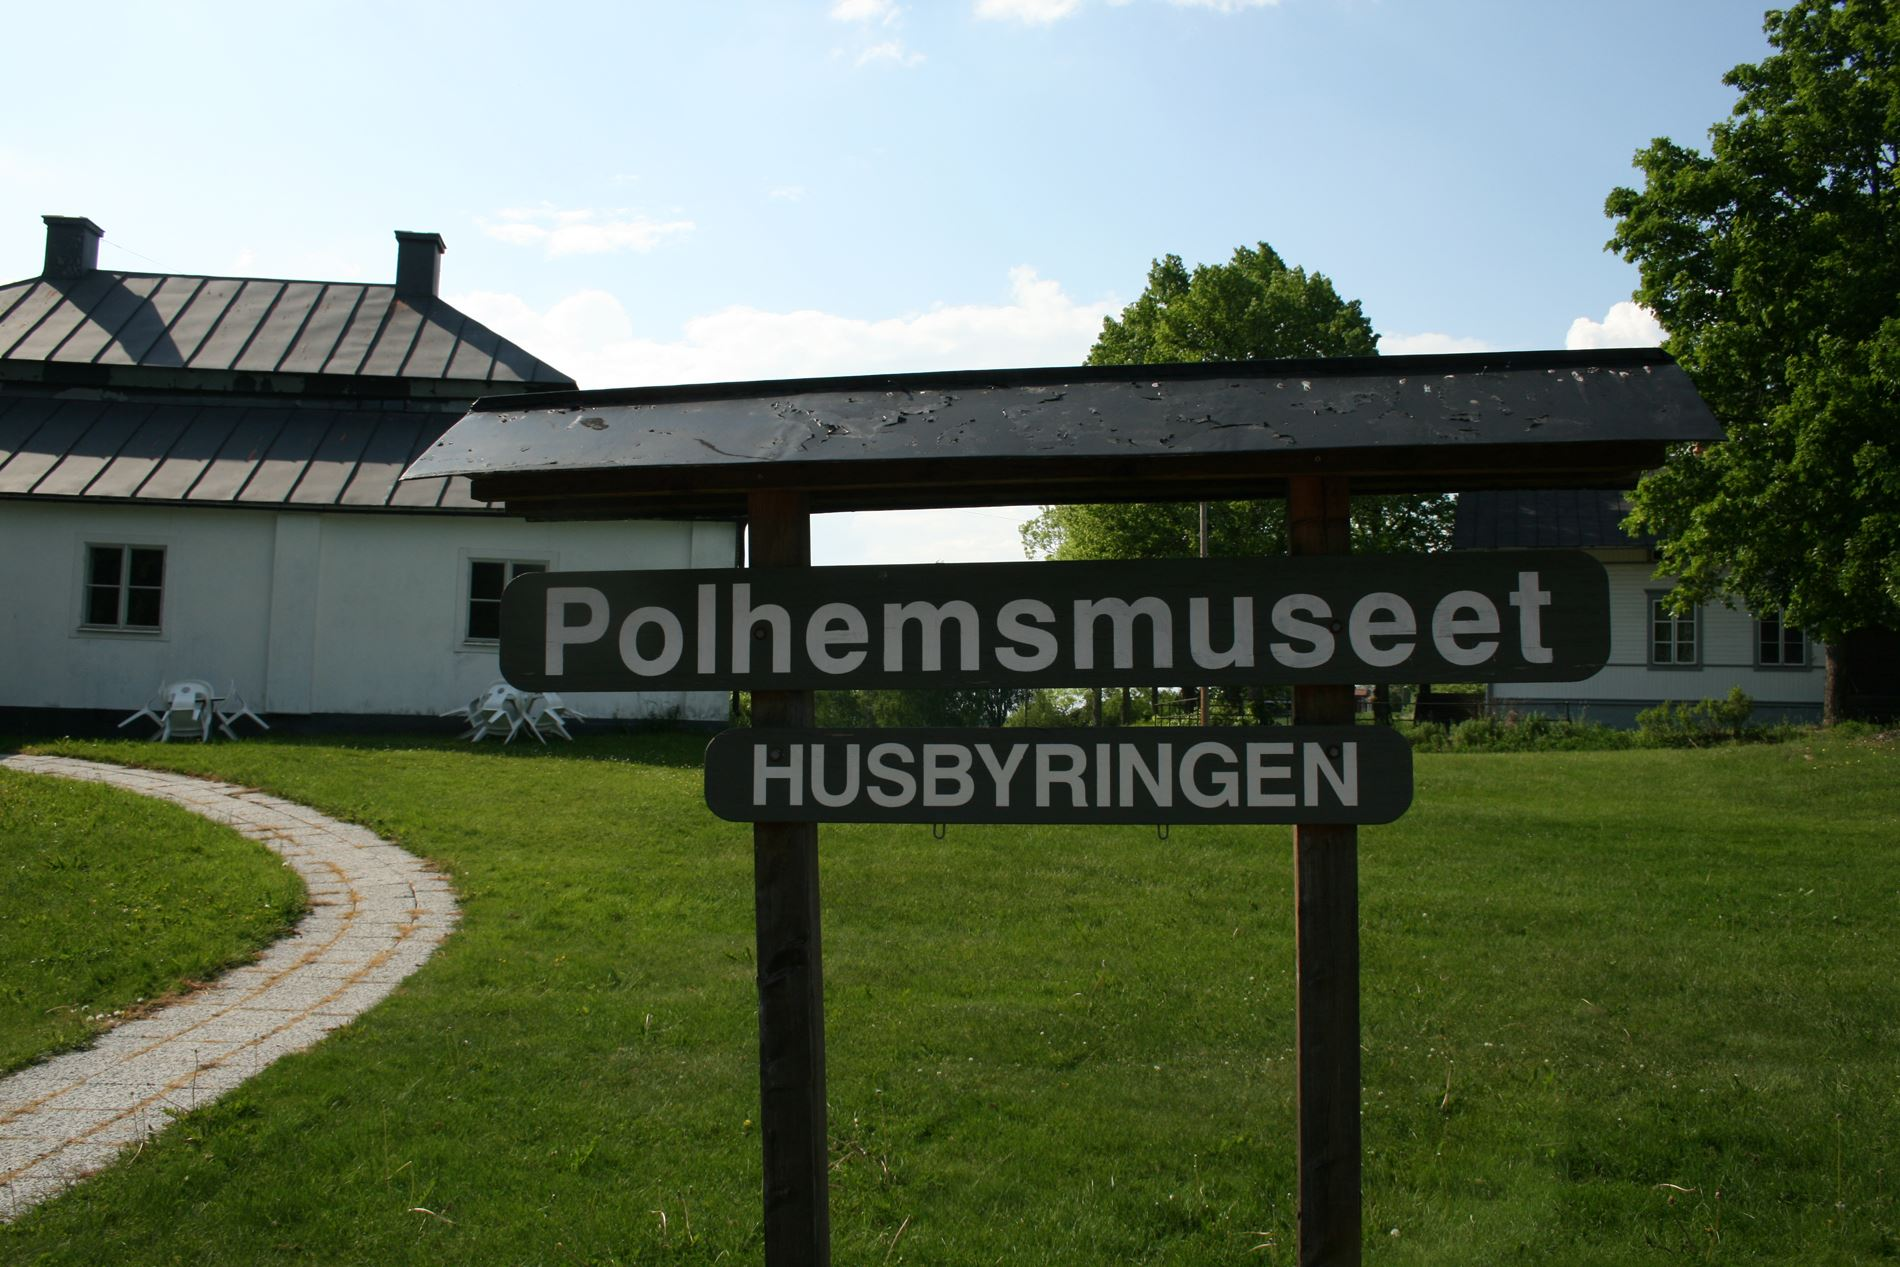 Foto: Pia R Wallner, The Polhem Museum